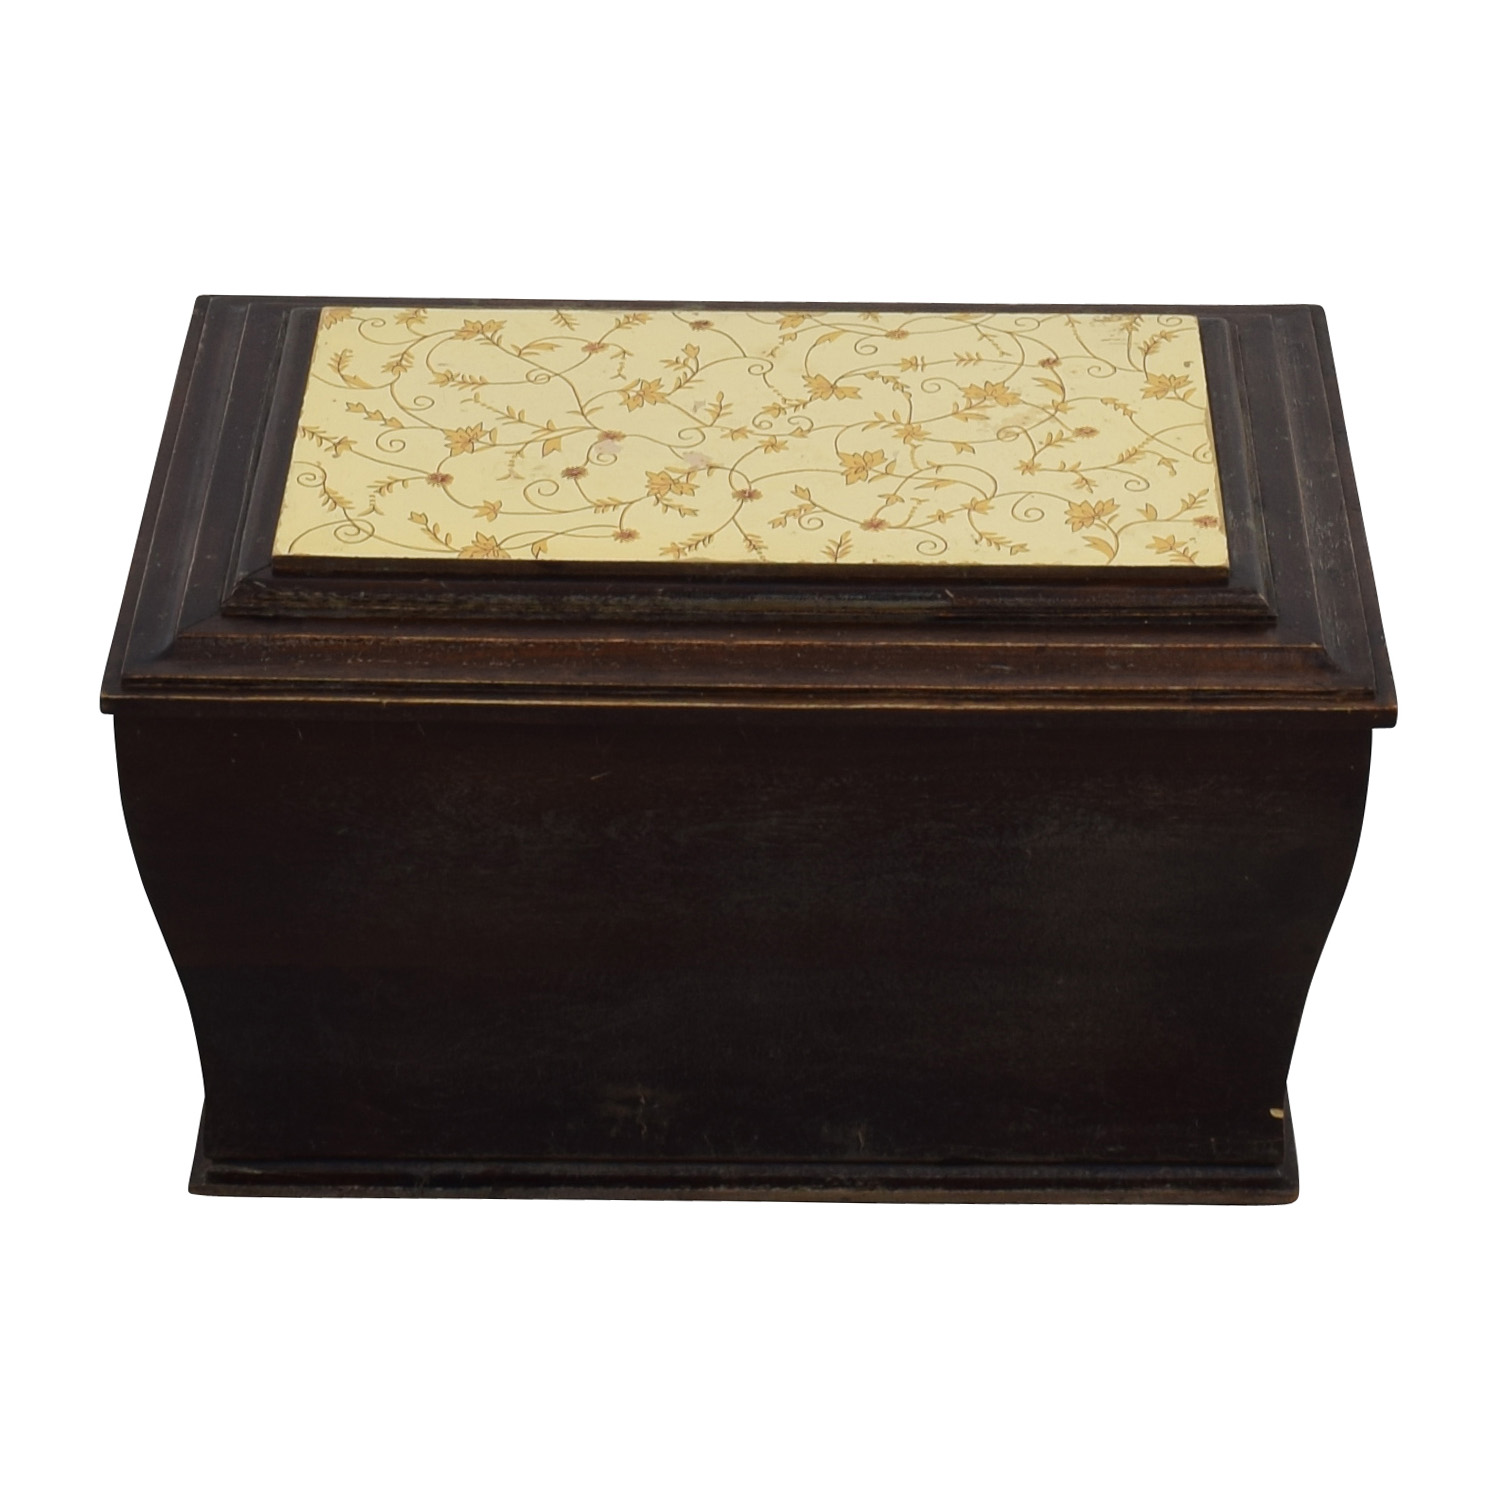 Wood Chest with Gold Flowered Suface used